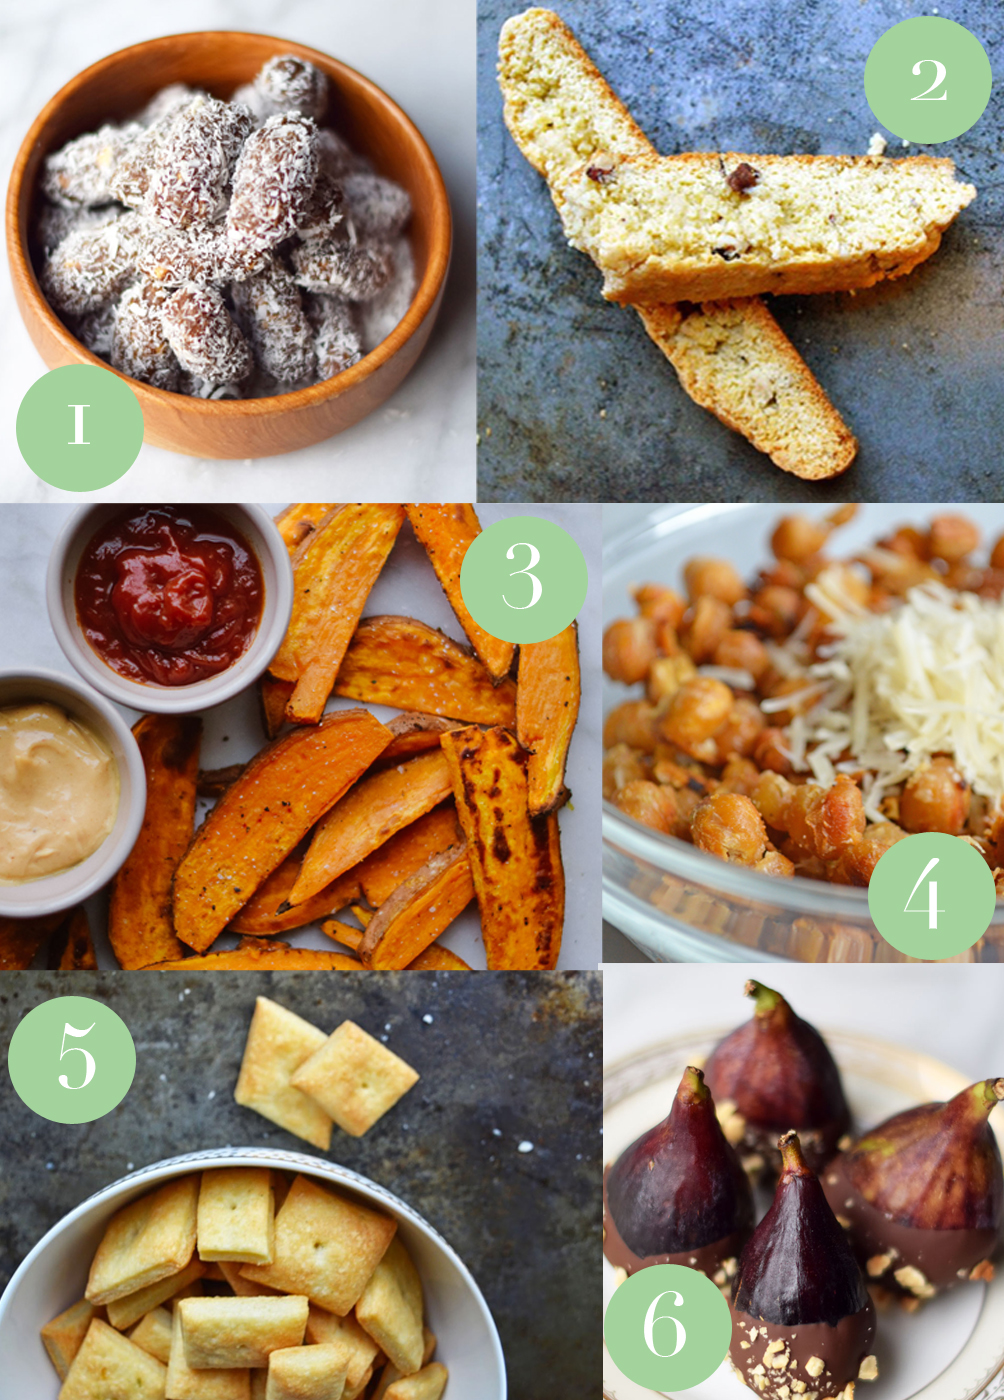 sharing six of the best quick spring snacks from savory to sweet